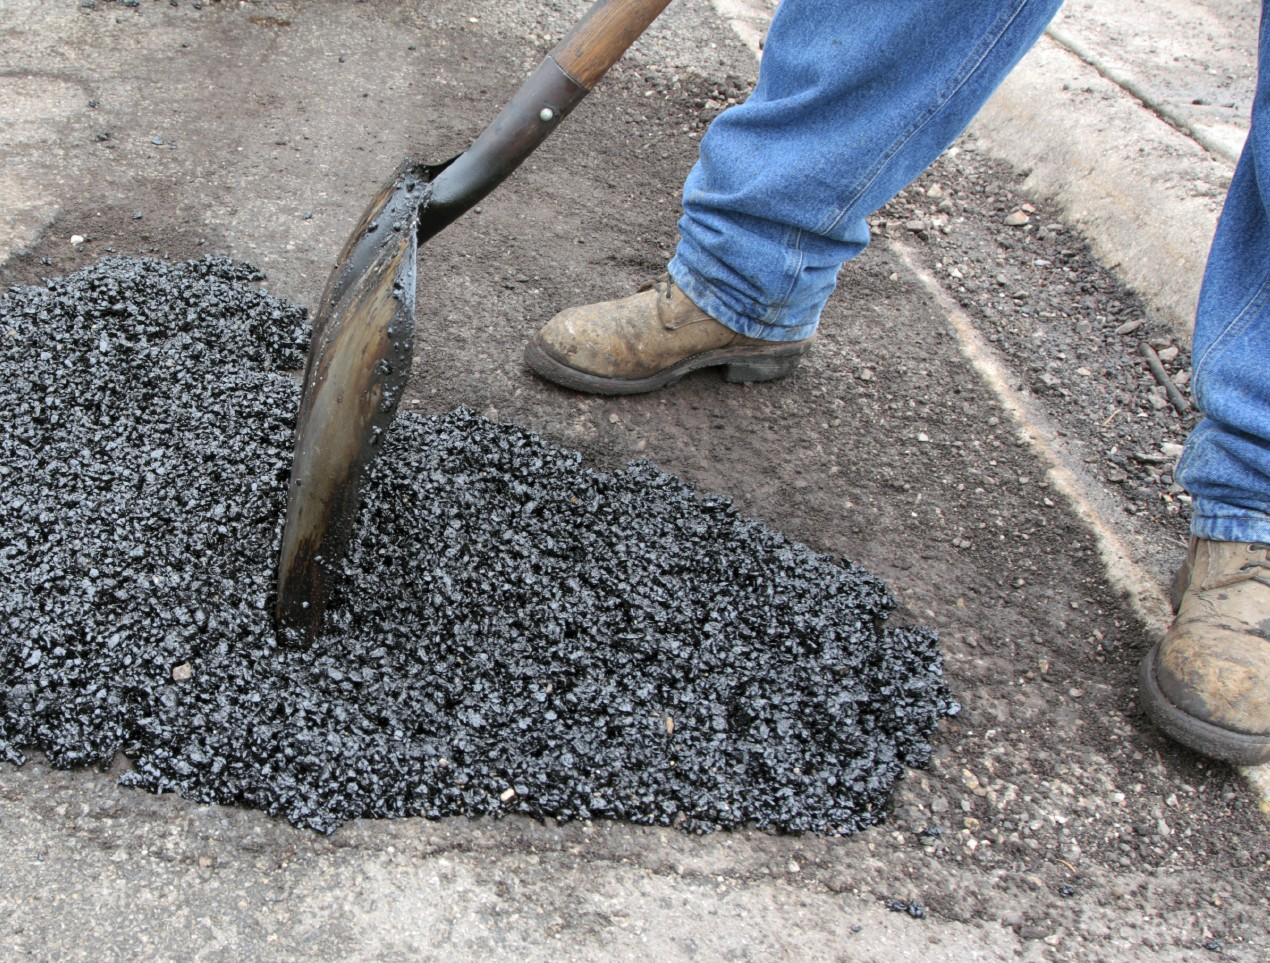 Working safely with hot asphalt and asphalt fumes